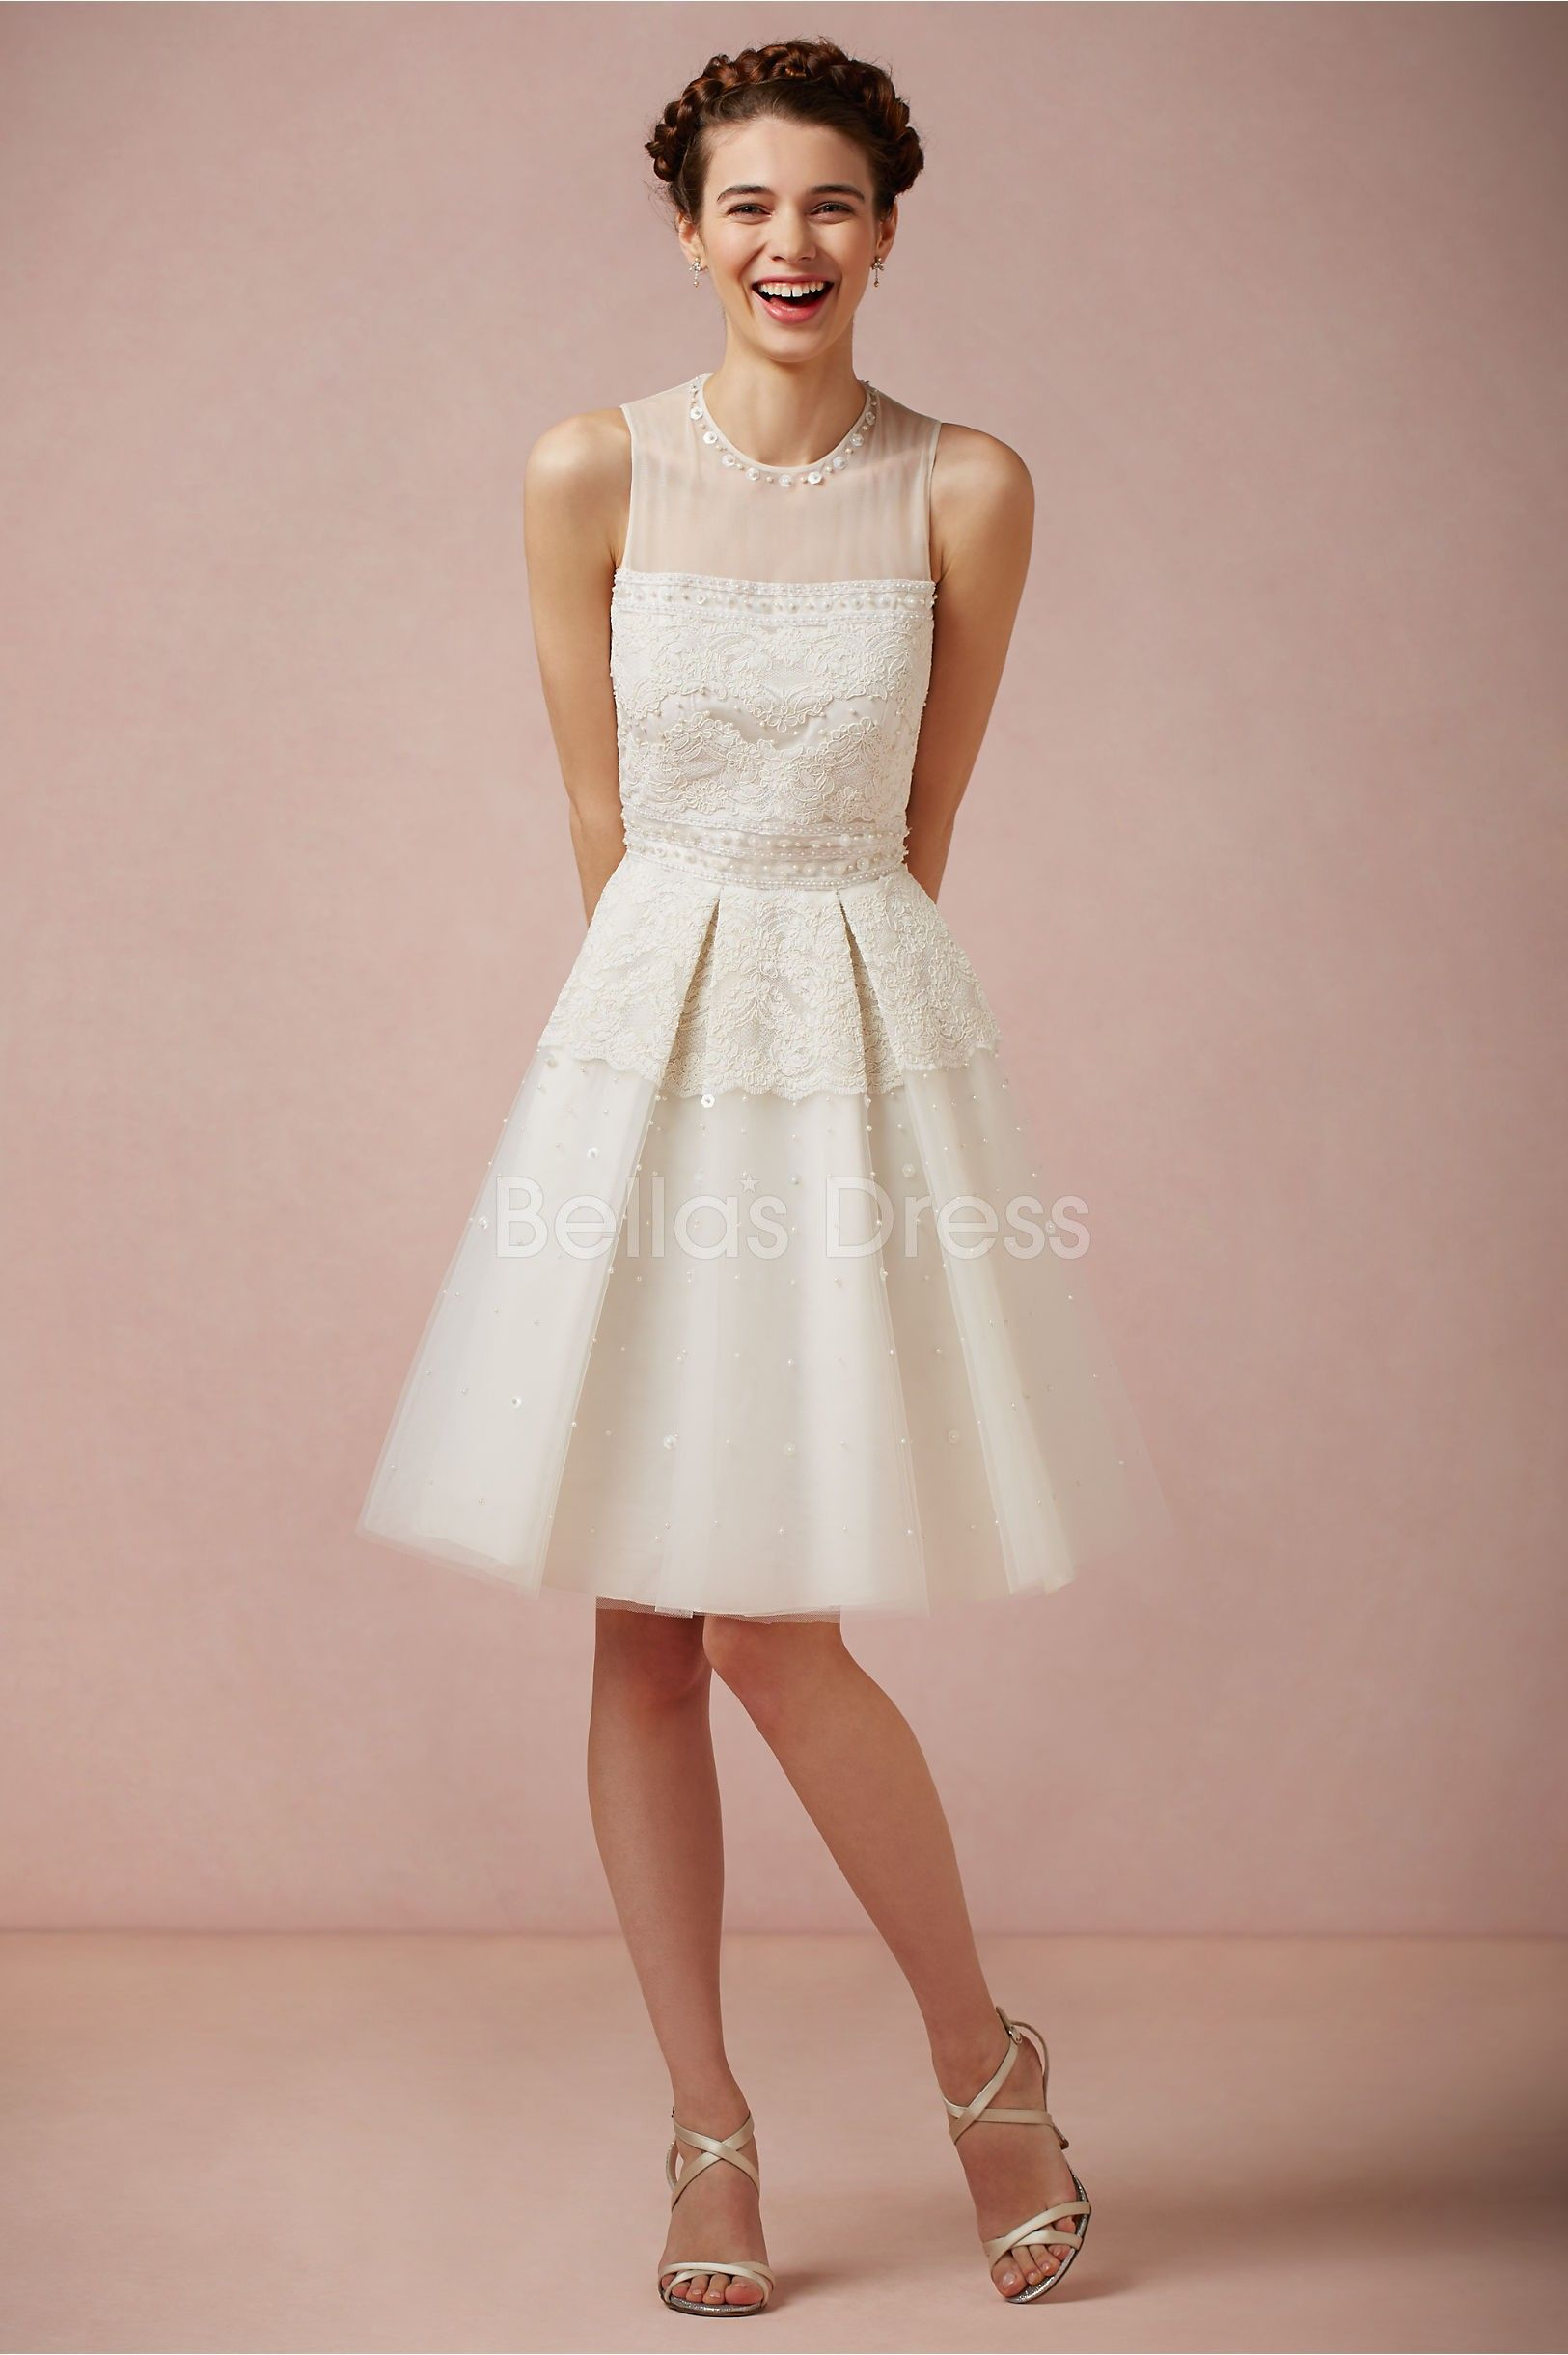 knee length wedding dresses - Google Search | Gotta love weddings ...